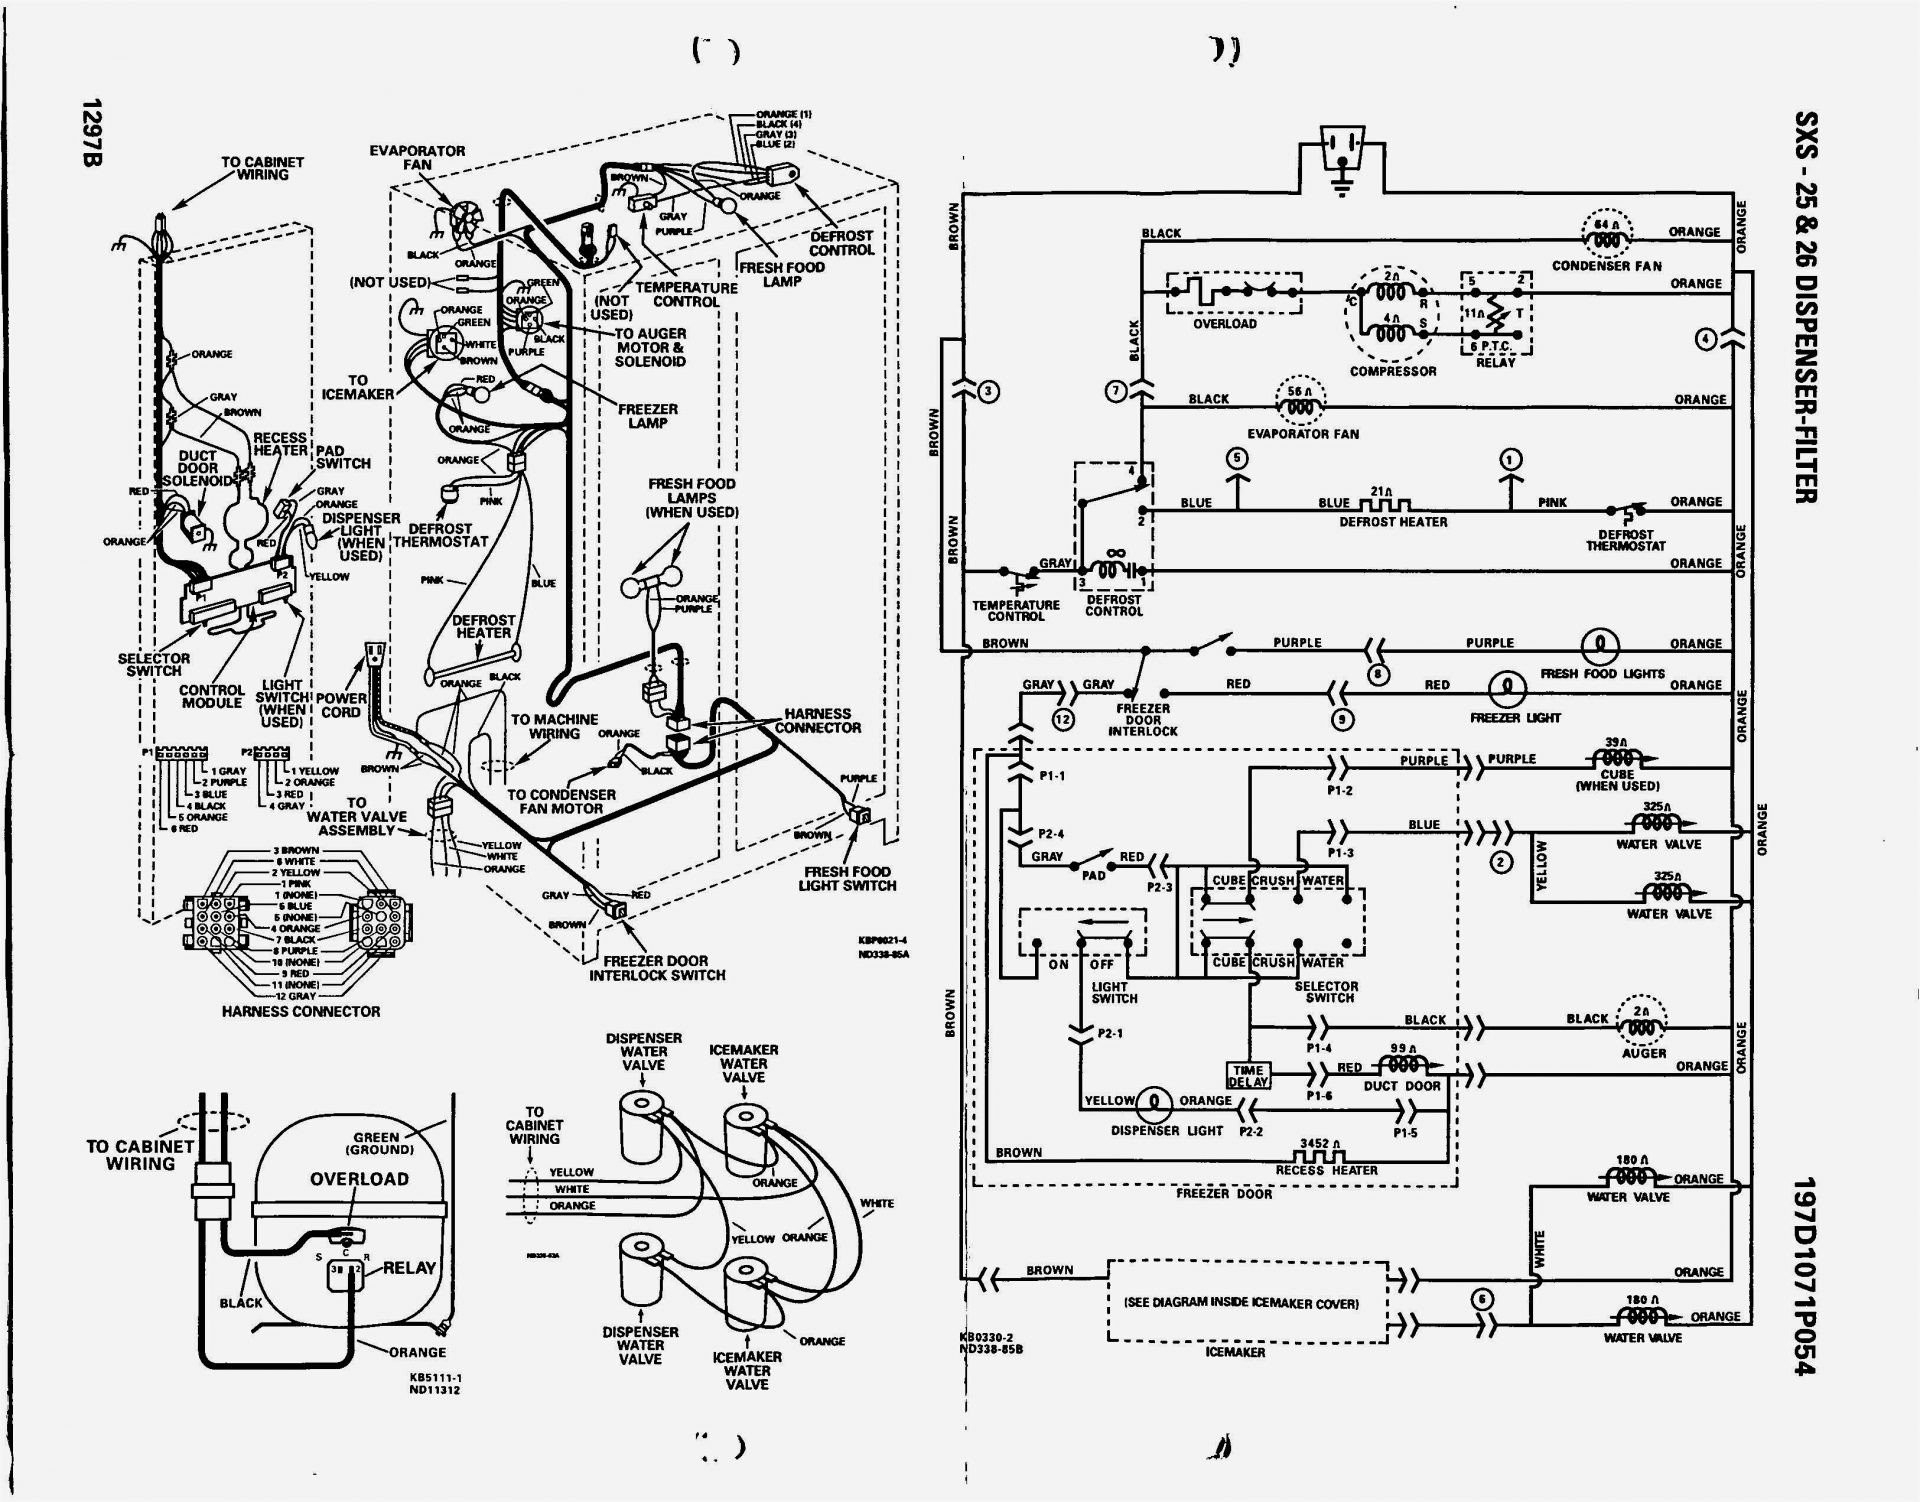 gould motor wiring diagram Collection-Motor Nameplate Wiring Diagram New Gould Century Motor Wiring Wiring Diagram Portal • 10-s